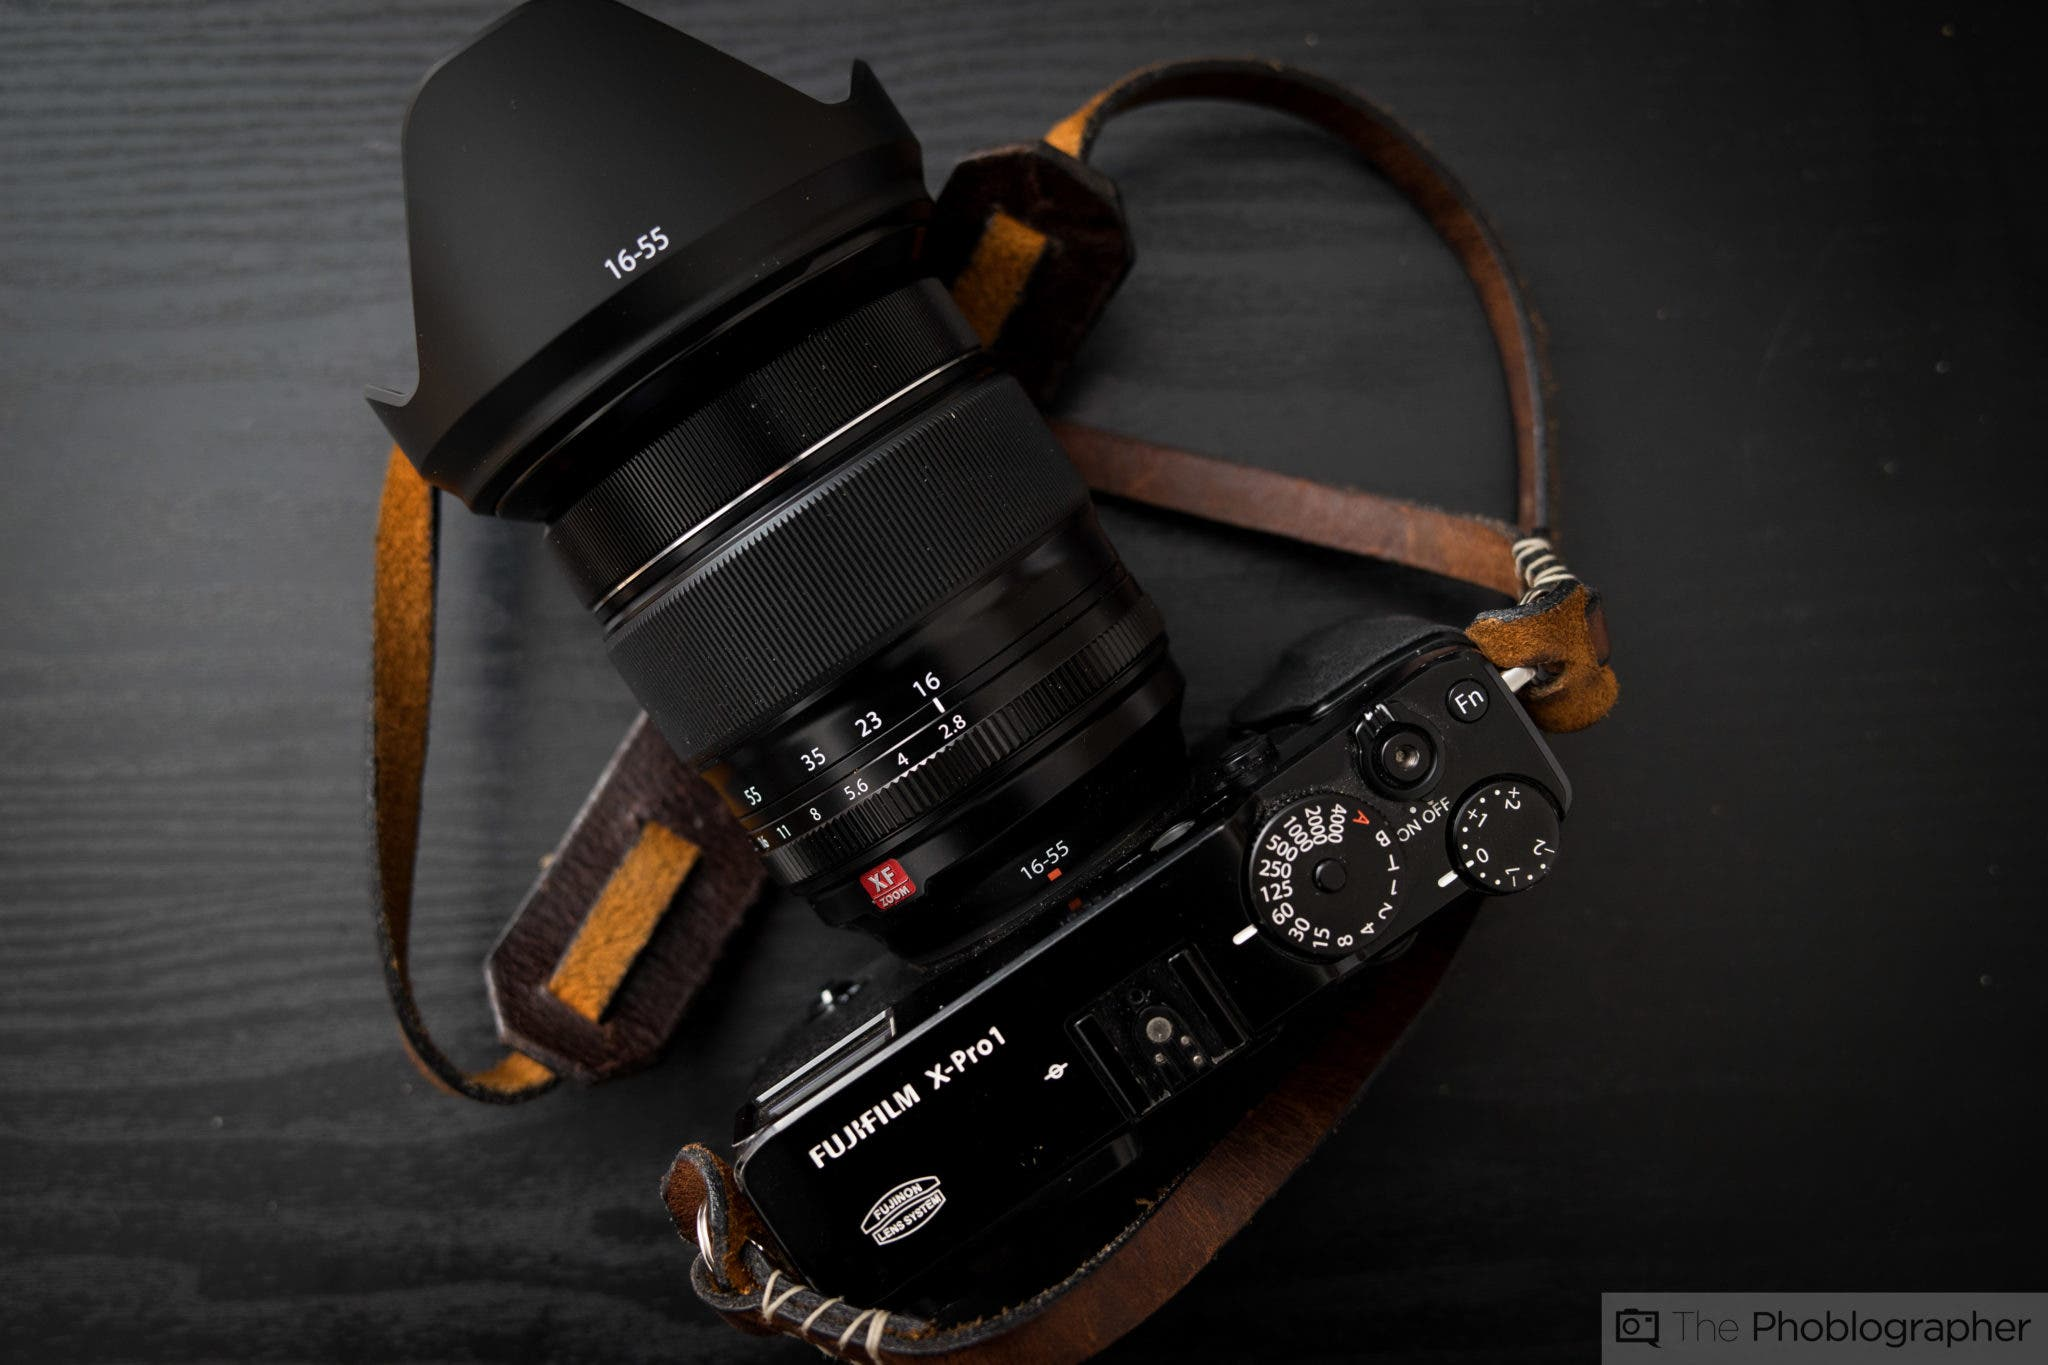 Cheap Photo: Save Big On Fujifilm Gear. X-T3 with Lens and Grip $2,099